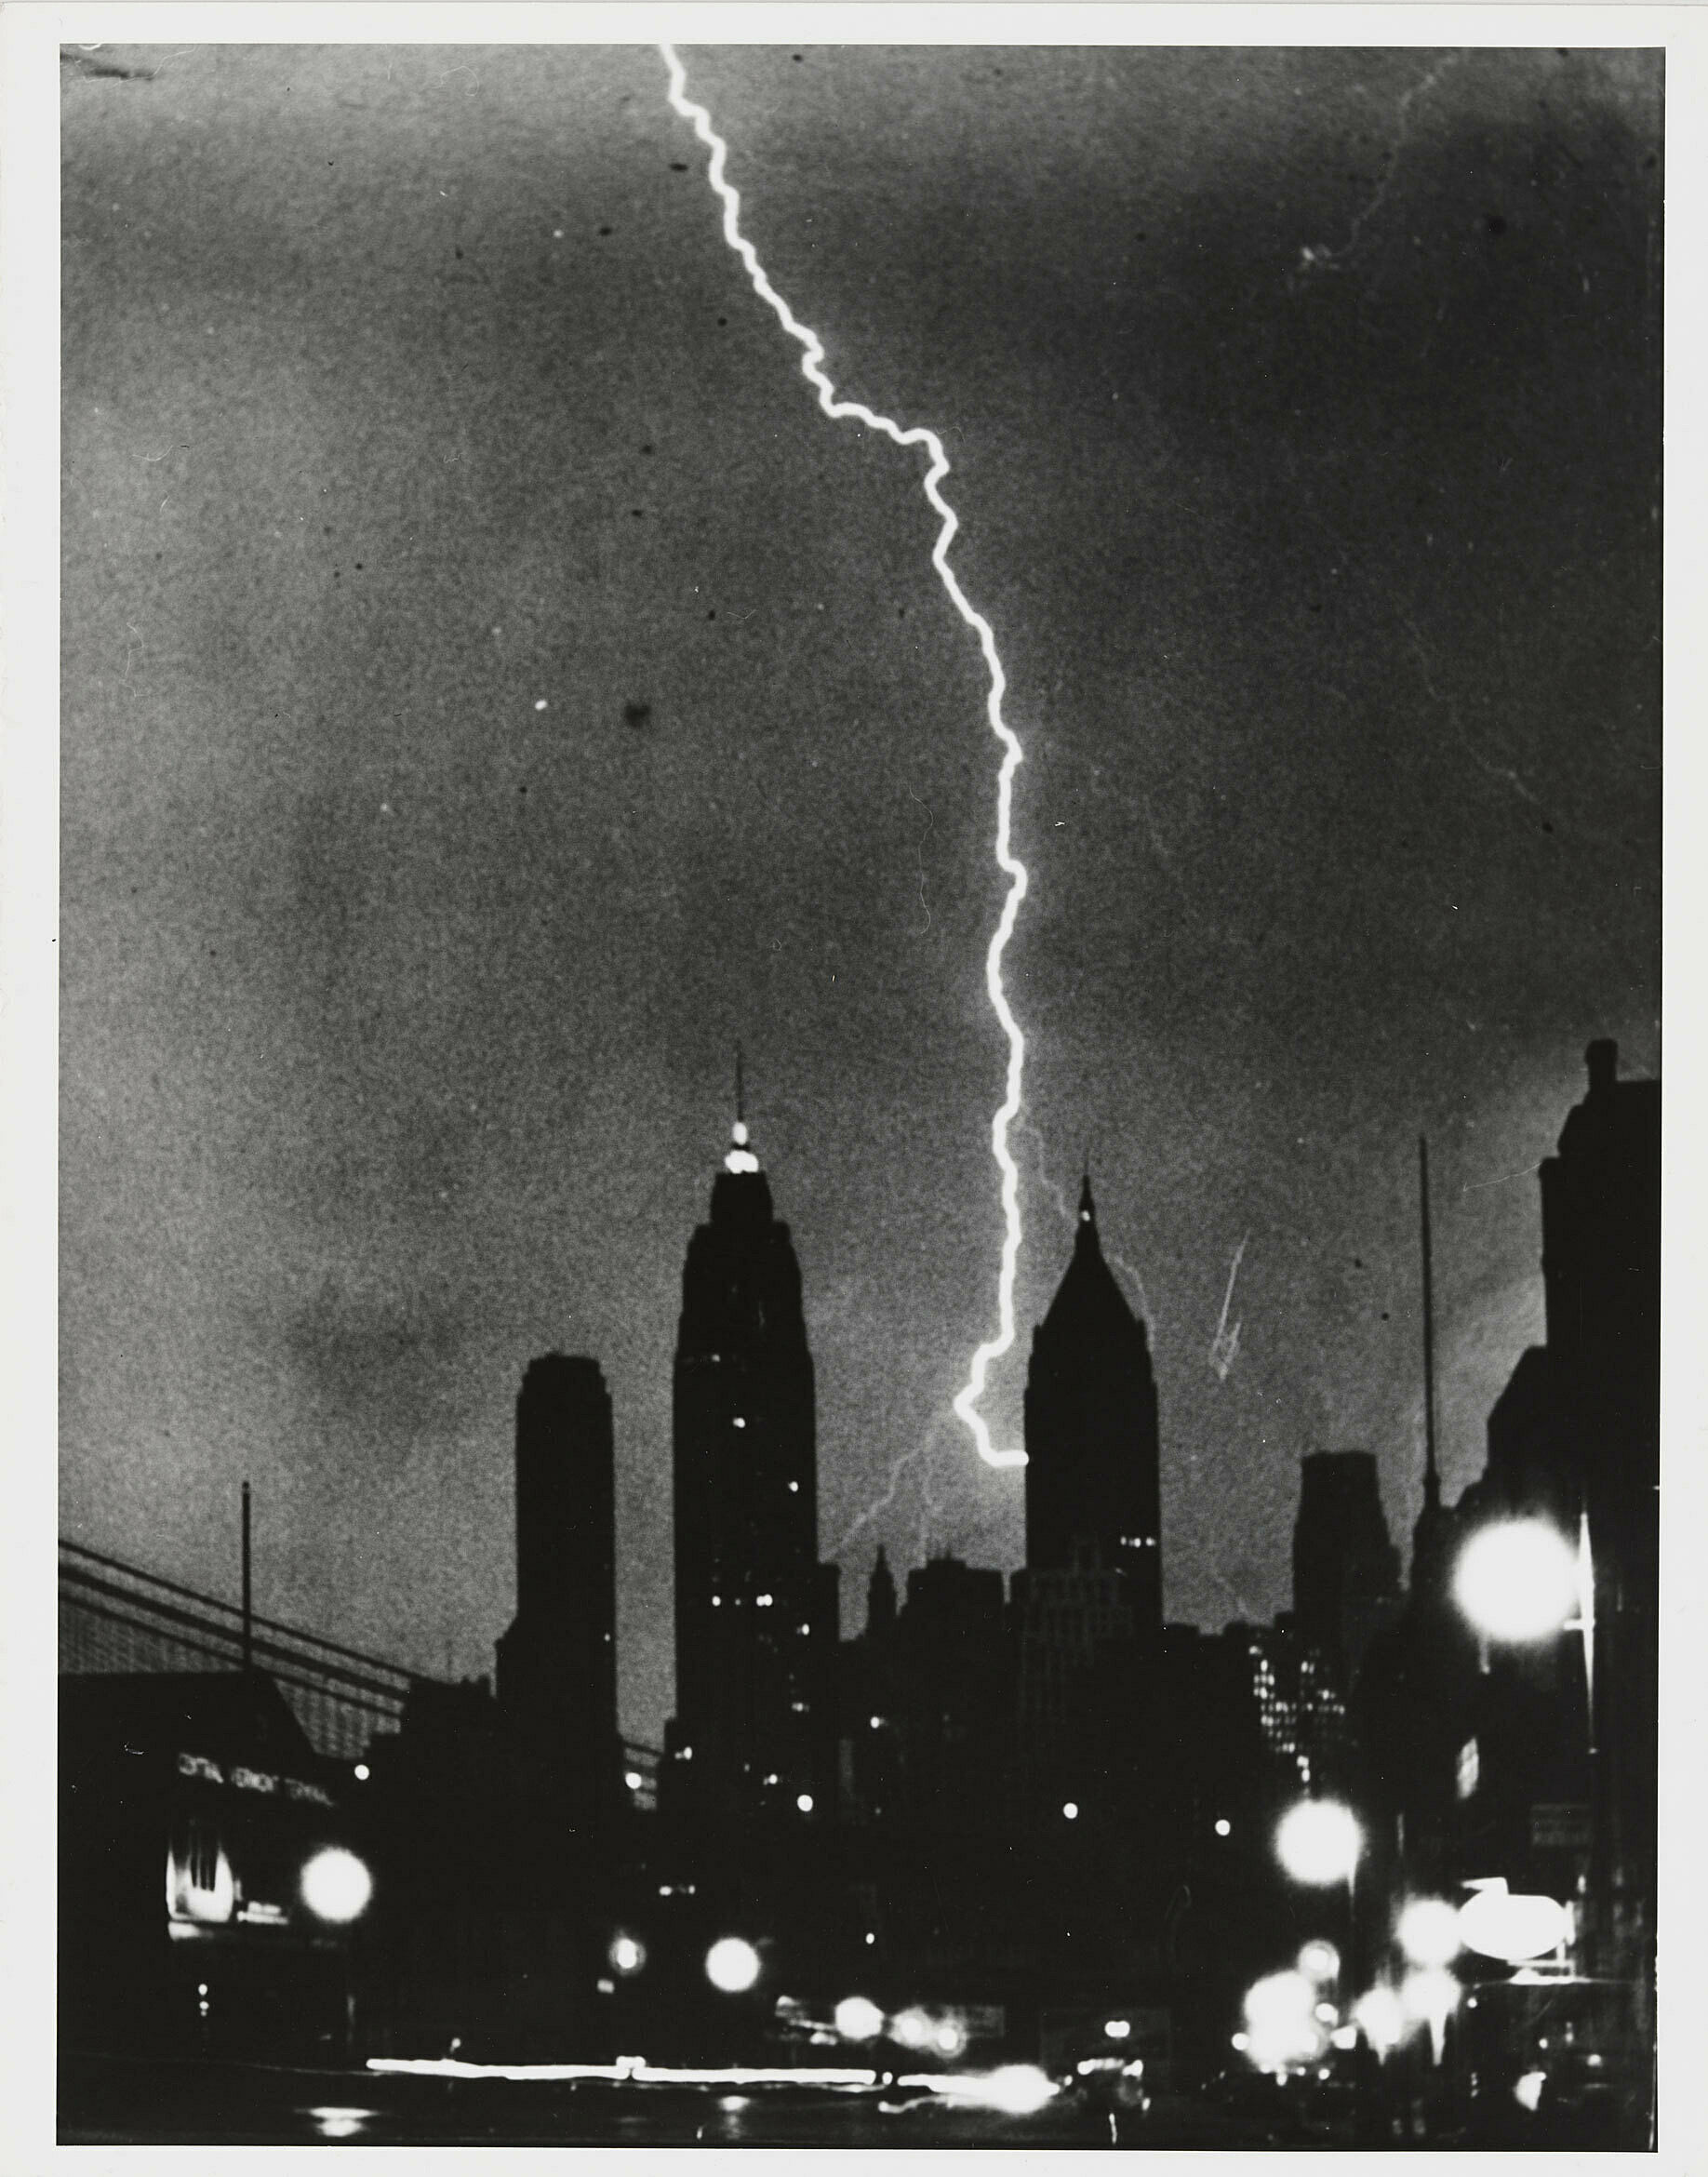 Black and white photo of lightning striking a building in the city.